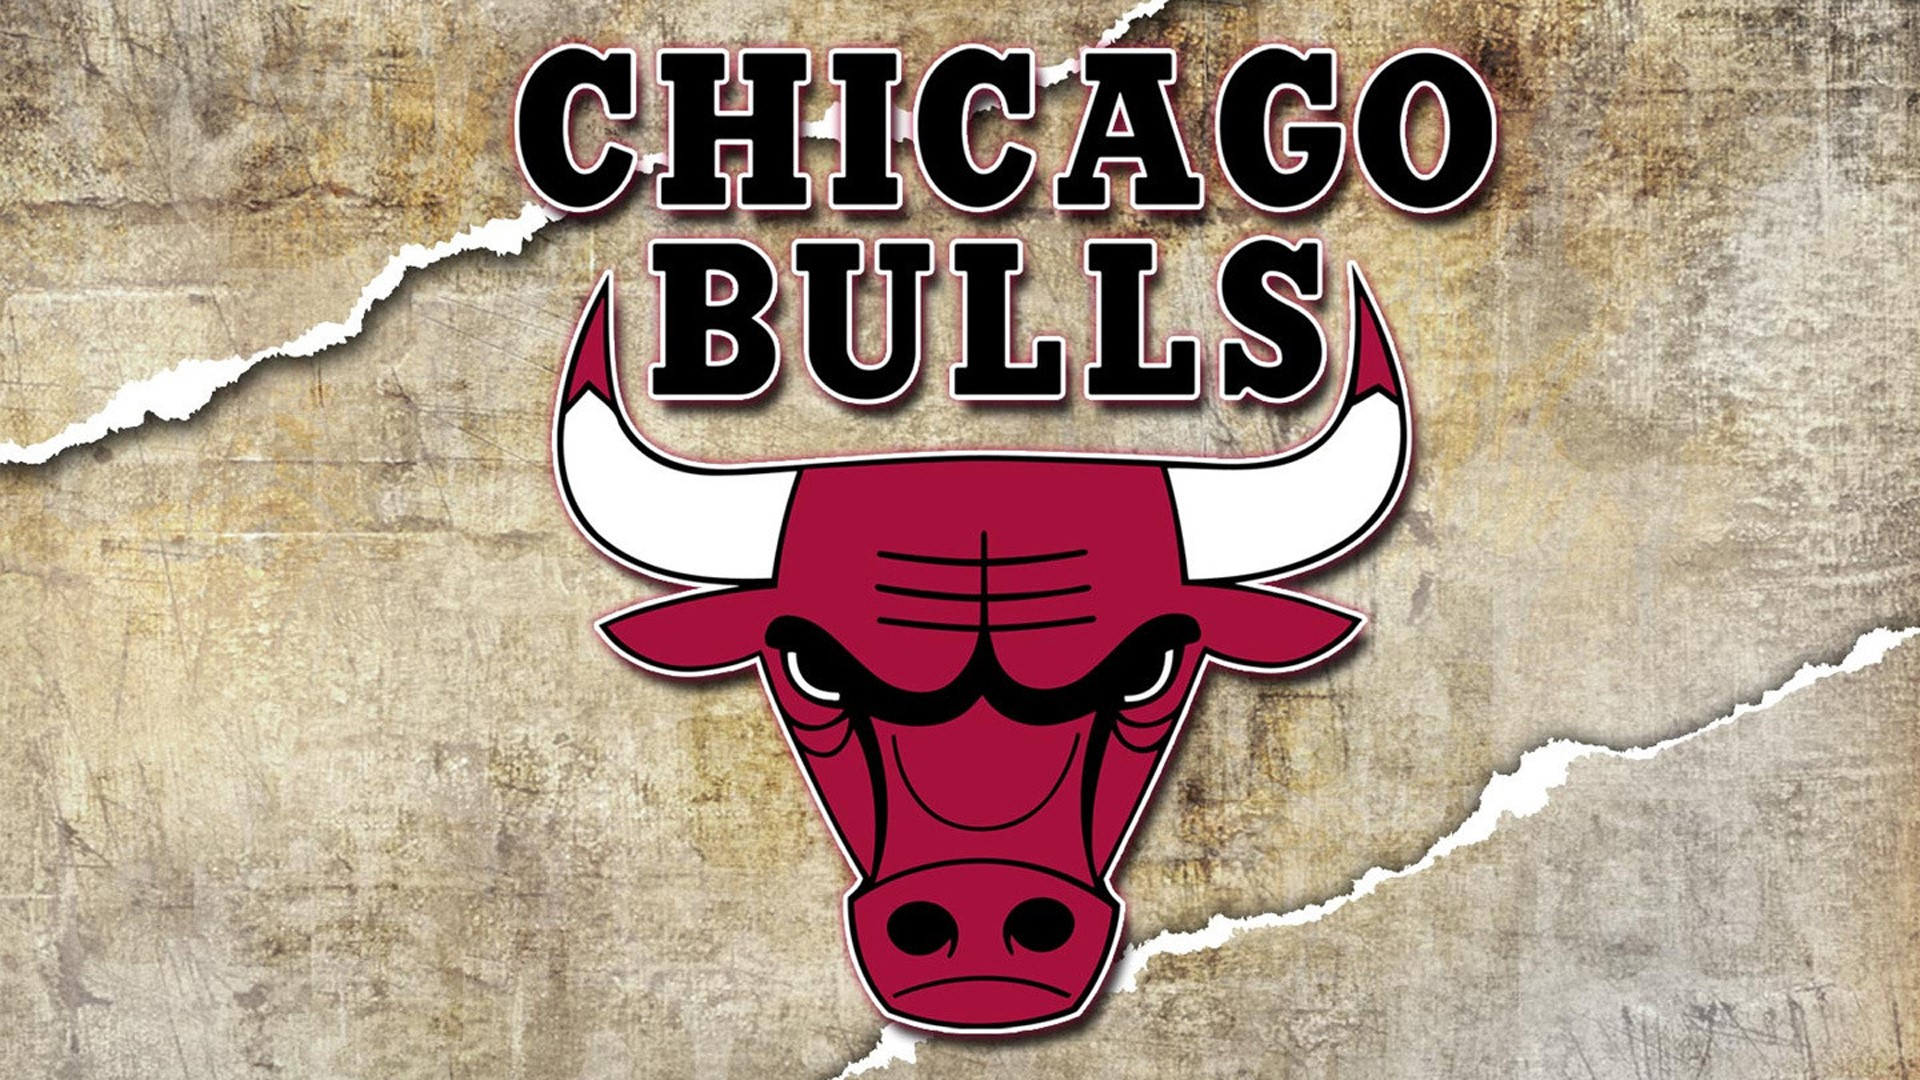 Pictures of Chicago Bulls